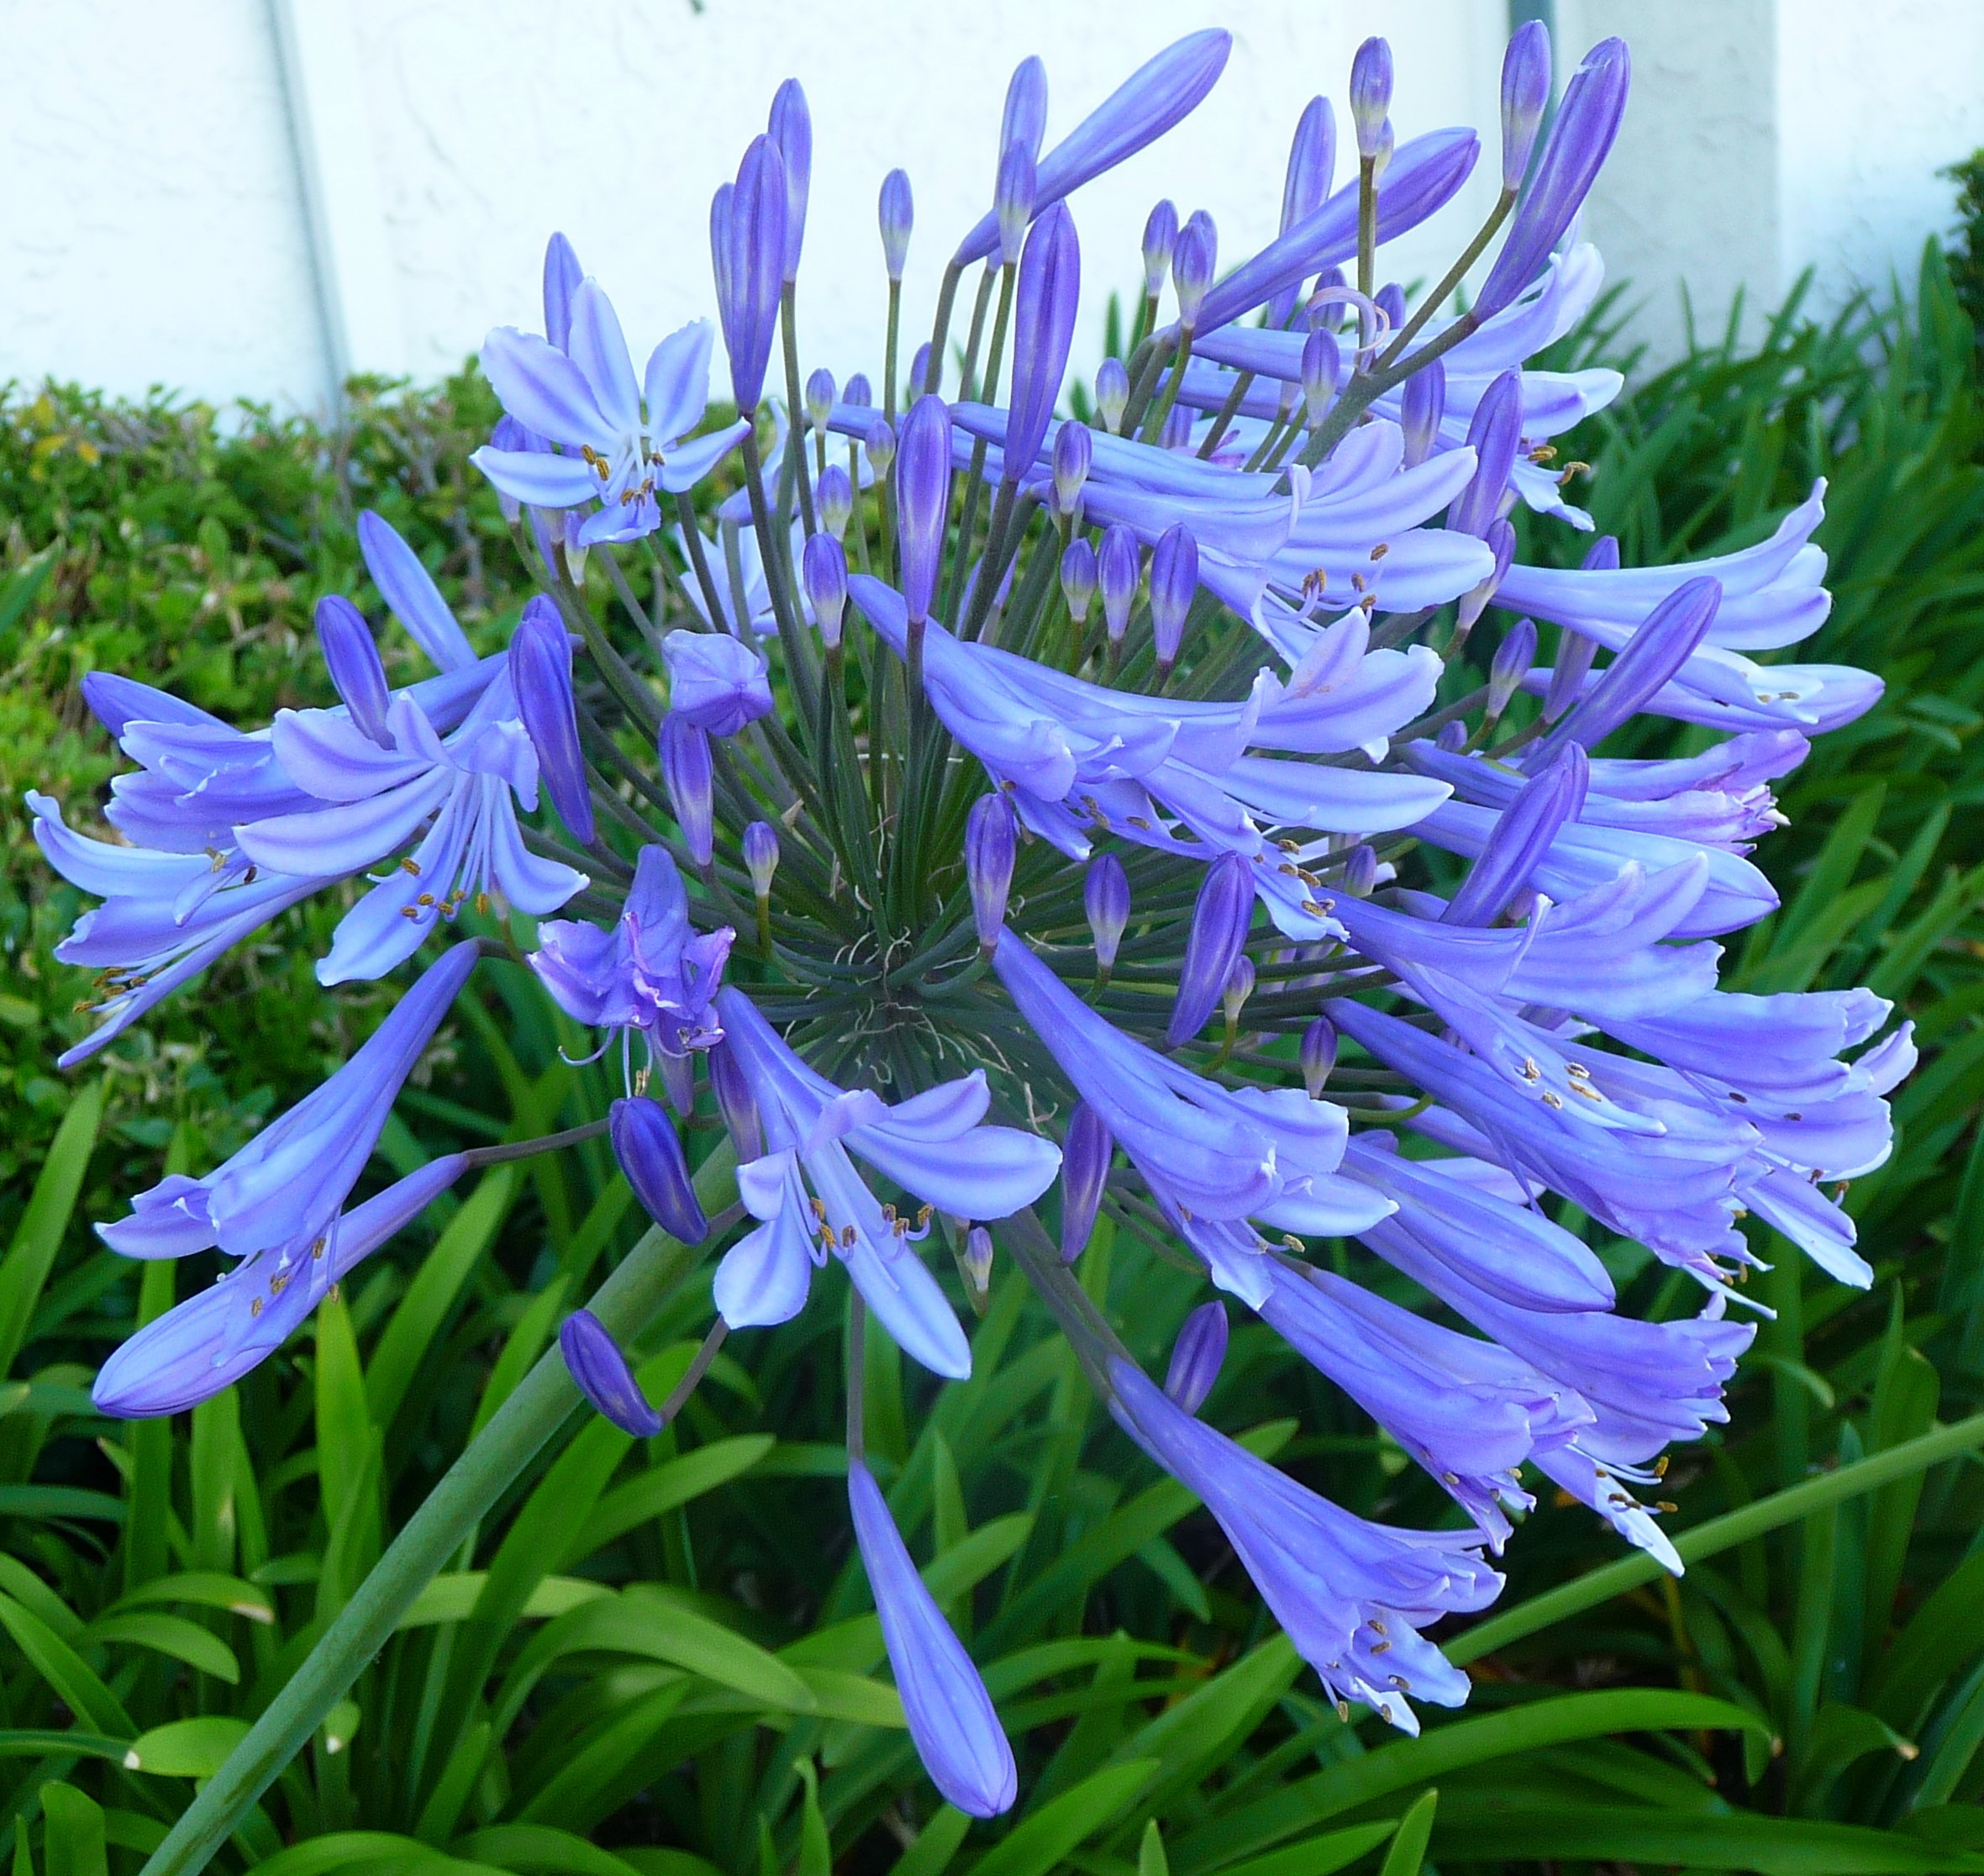 Agapanthus Africanus 'Lily of The Nile' - 20 Live Plants - 2'' Pot Size - Blooming Groundcover